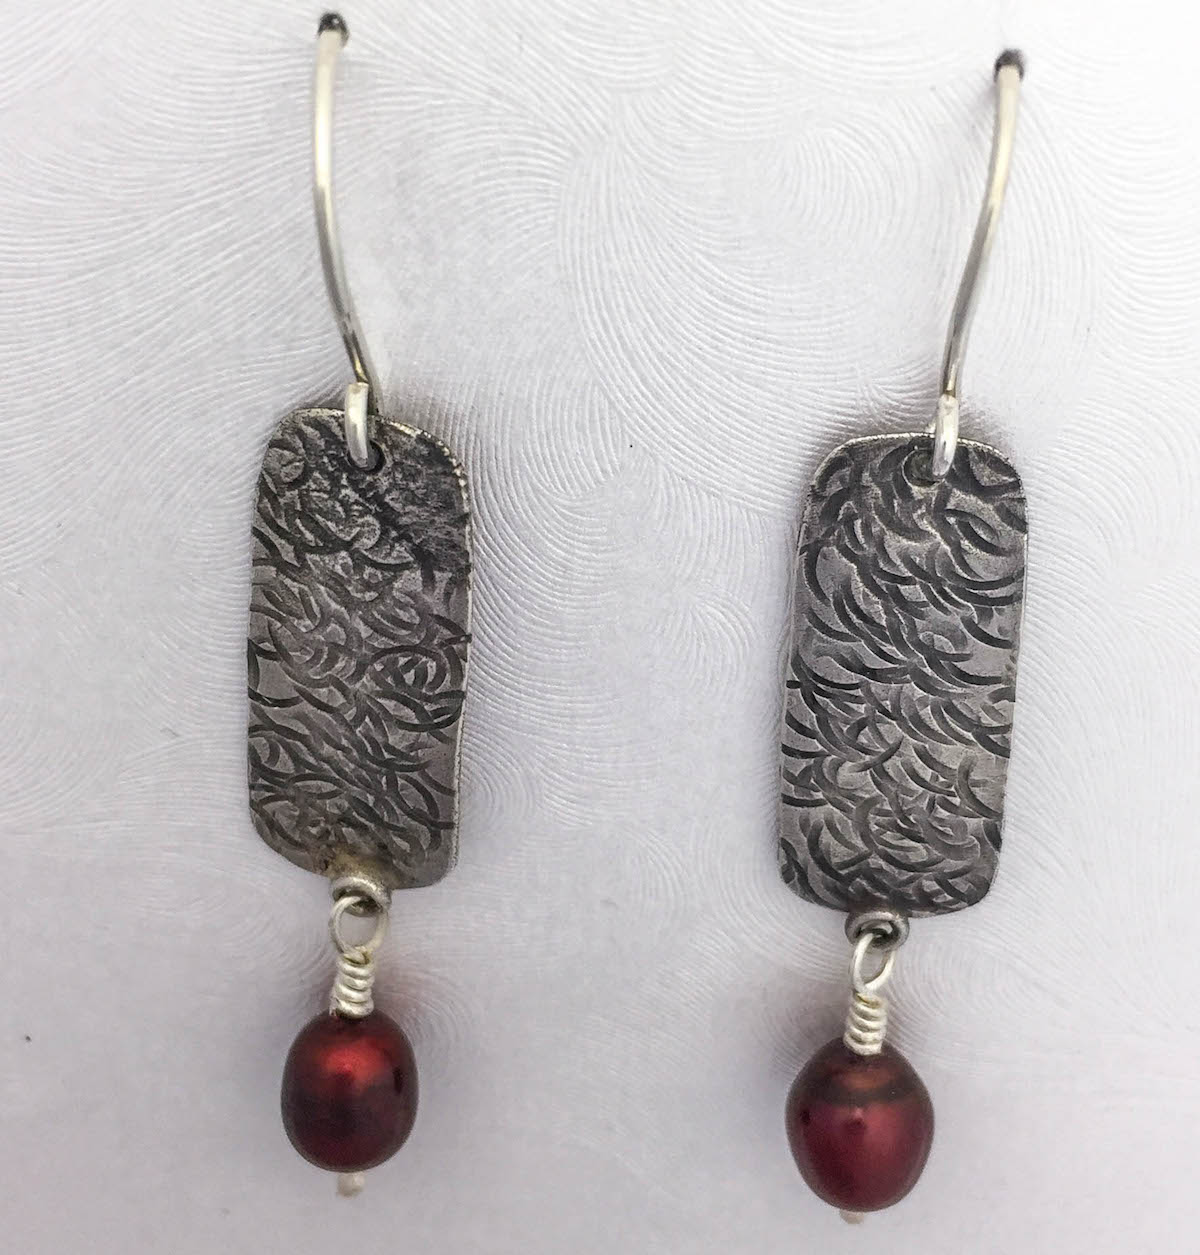 handmade earrings argentium silver hammered texture with deep burgundy pearls